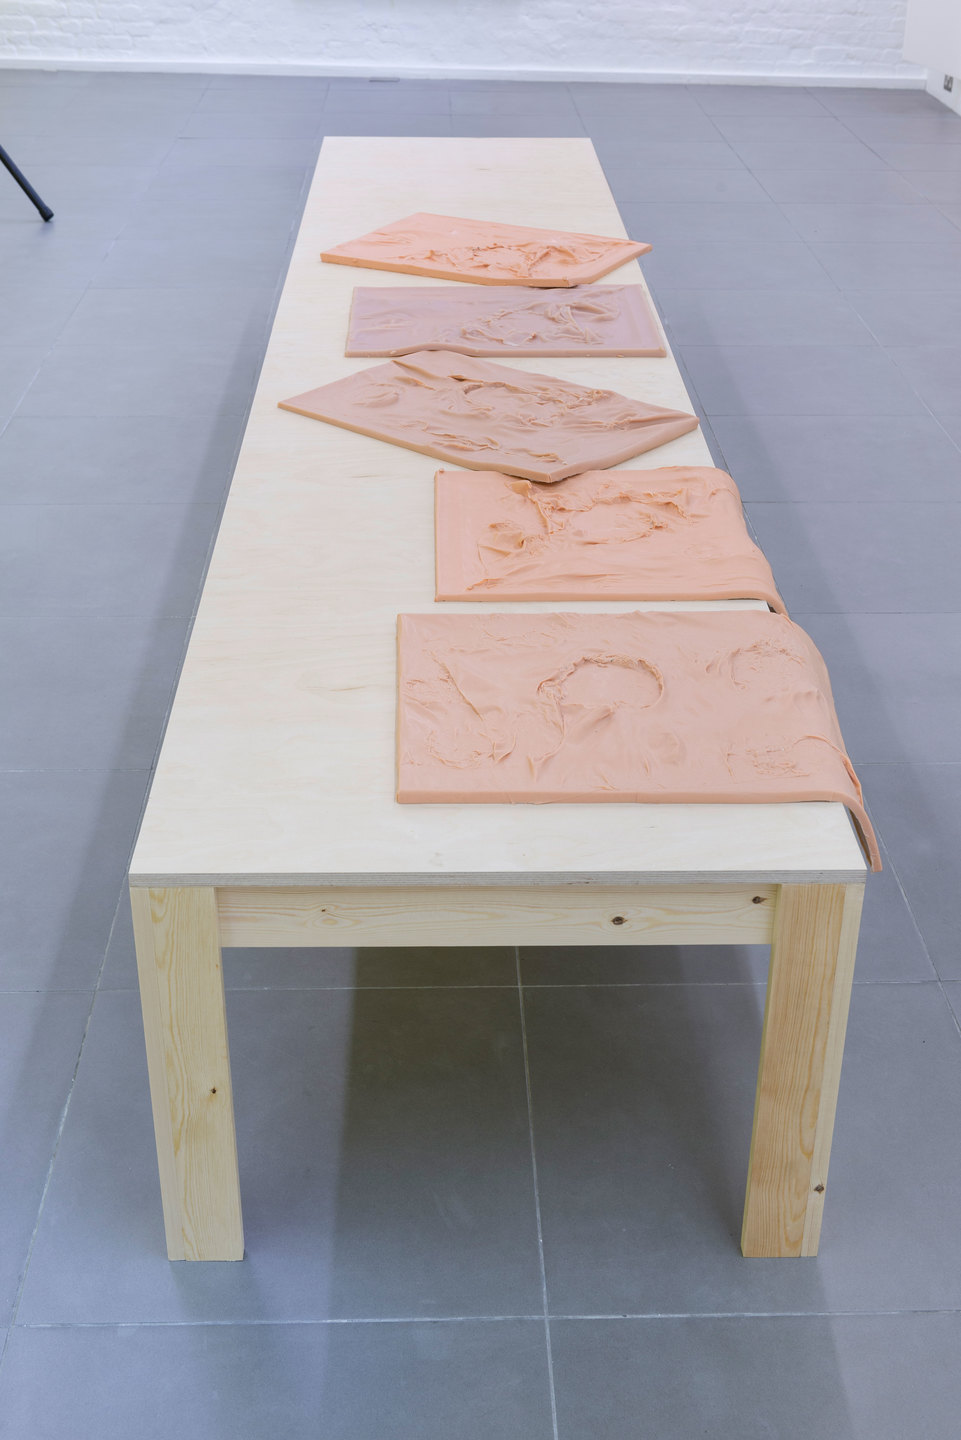 Nikolas Gambaroff, Untitled, 2013, Wooden table with 5 cast silicon works, Table: 77 cm x 381 cm x 55 cm, each silicon work: 61 cm x 46 cm x 3 cm, Cell Project Space